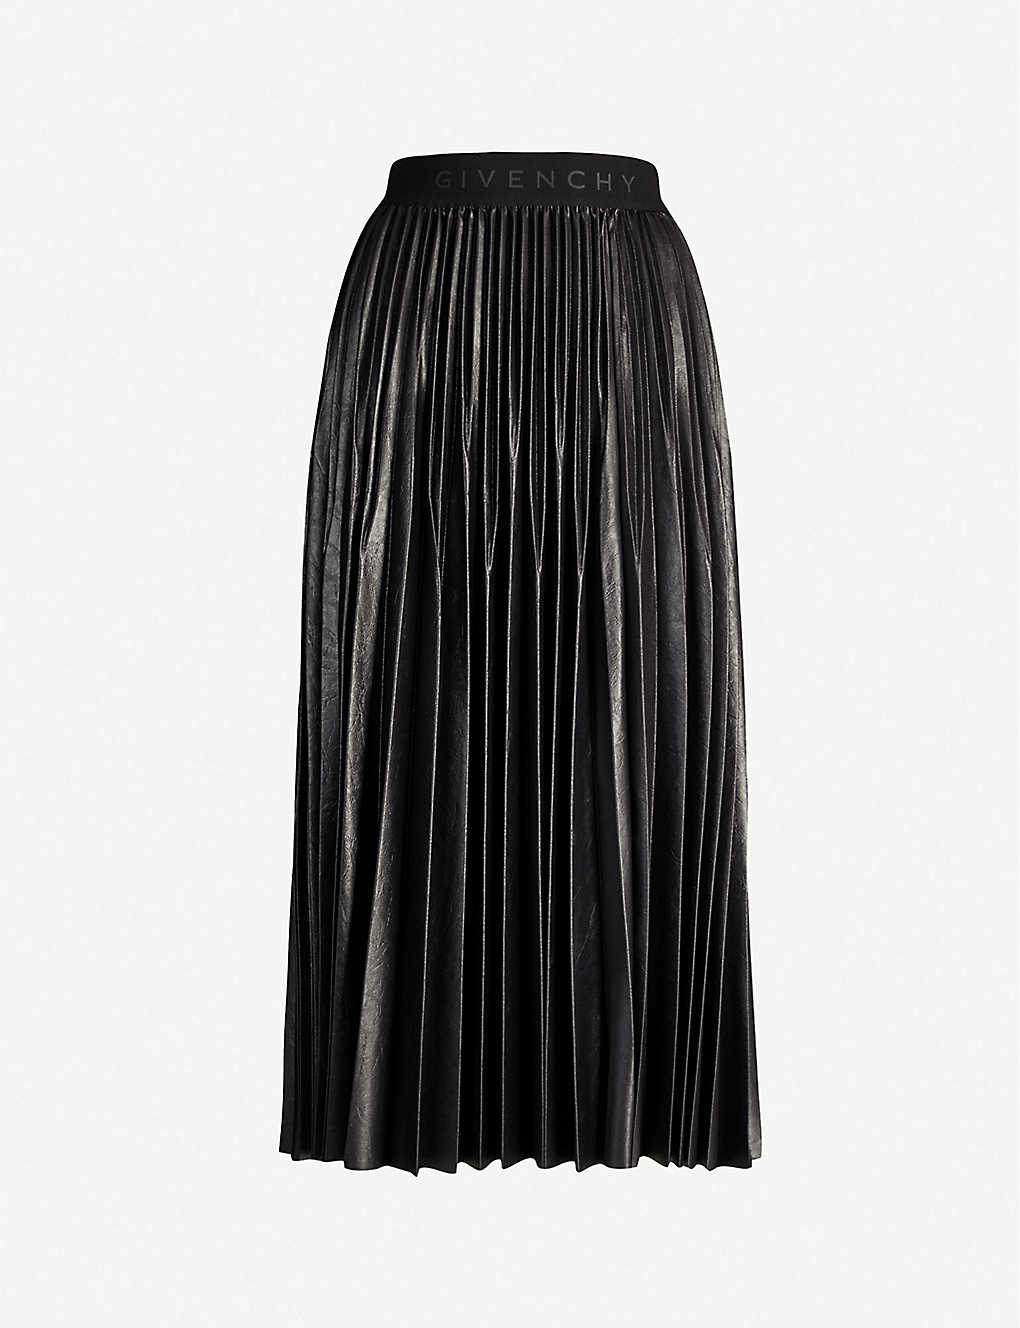 07643adf3a4 GIVENCHY - Pleated faux-leather skirt | Selfridges.com